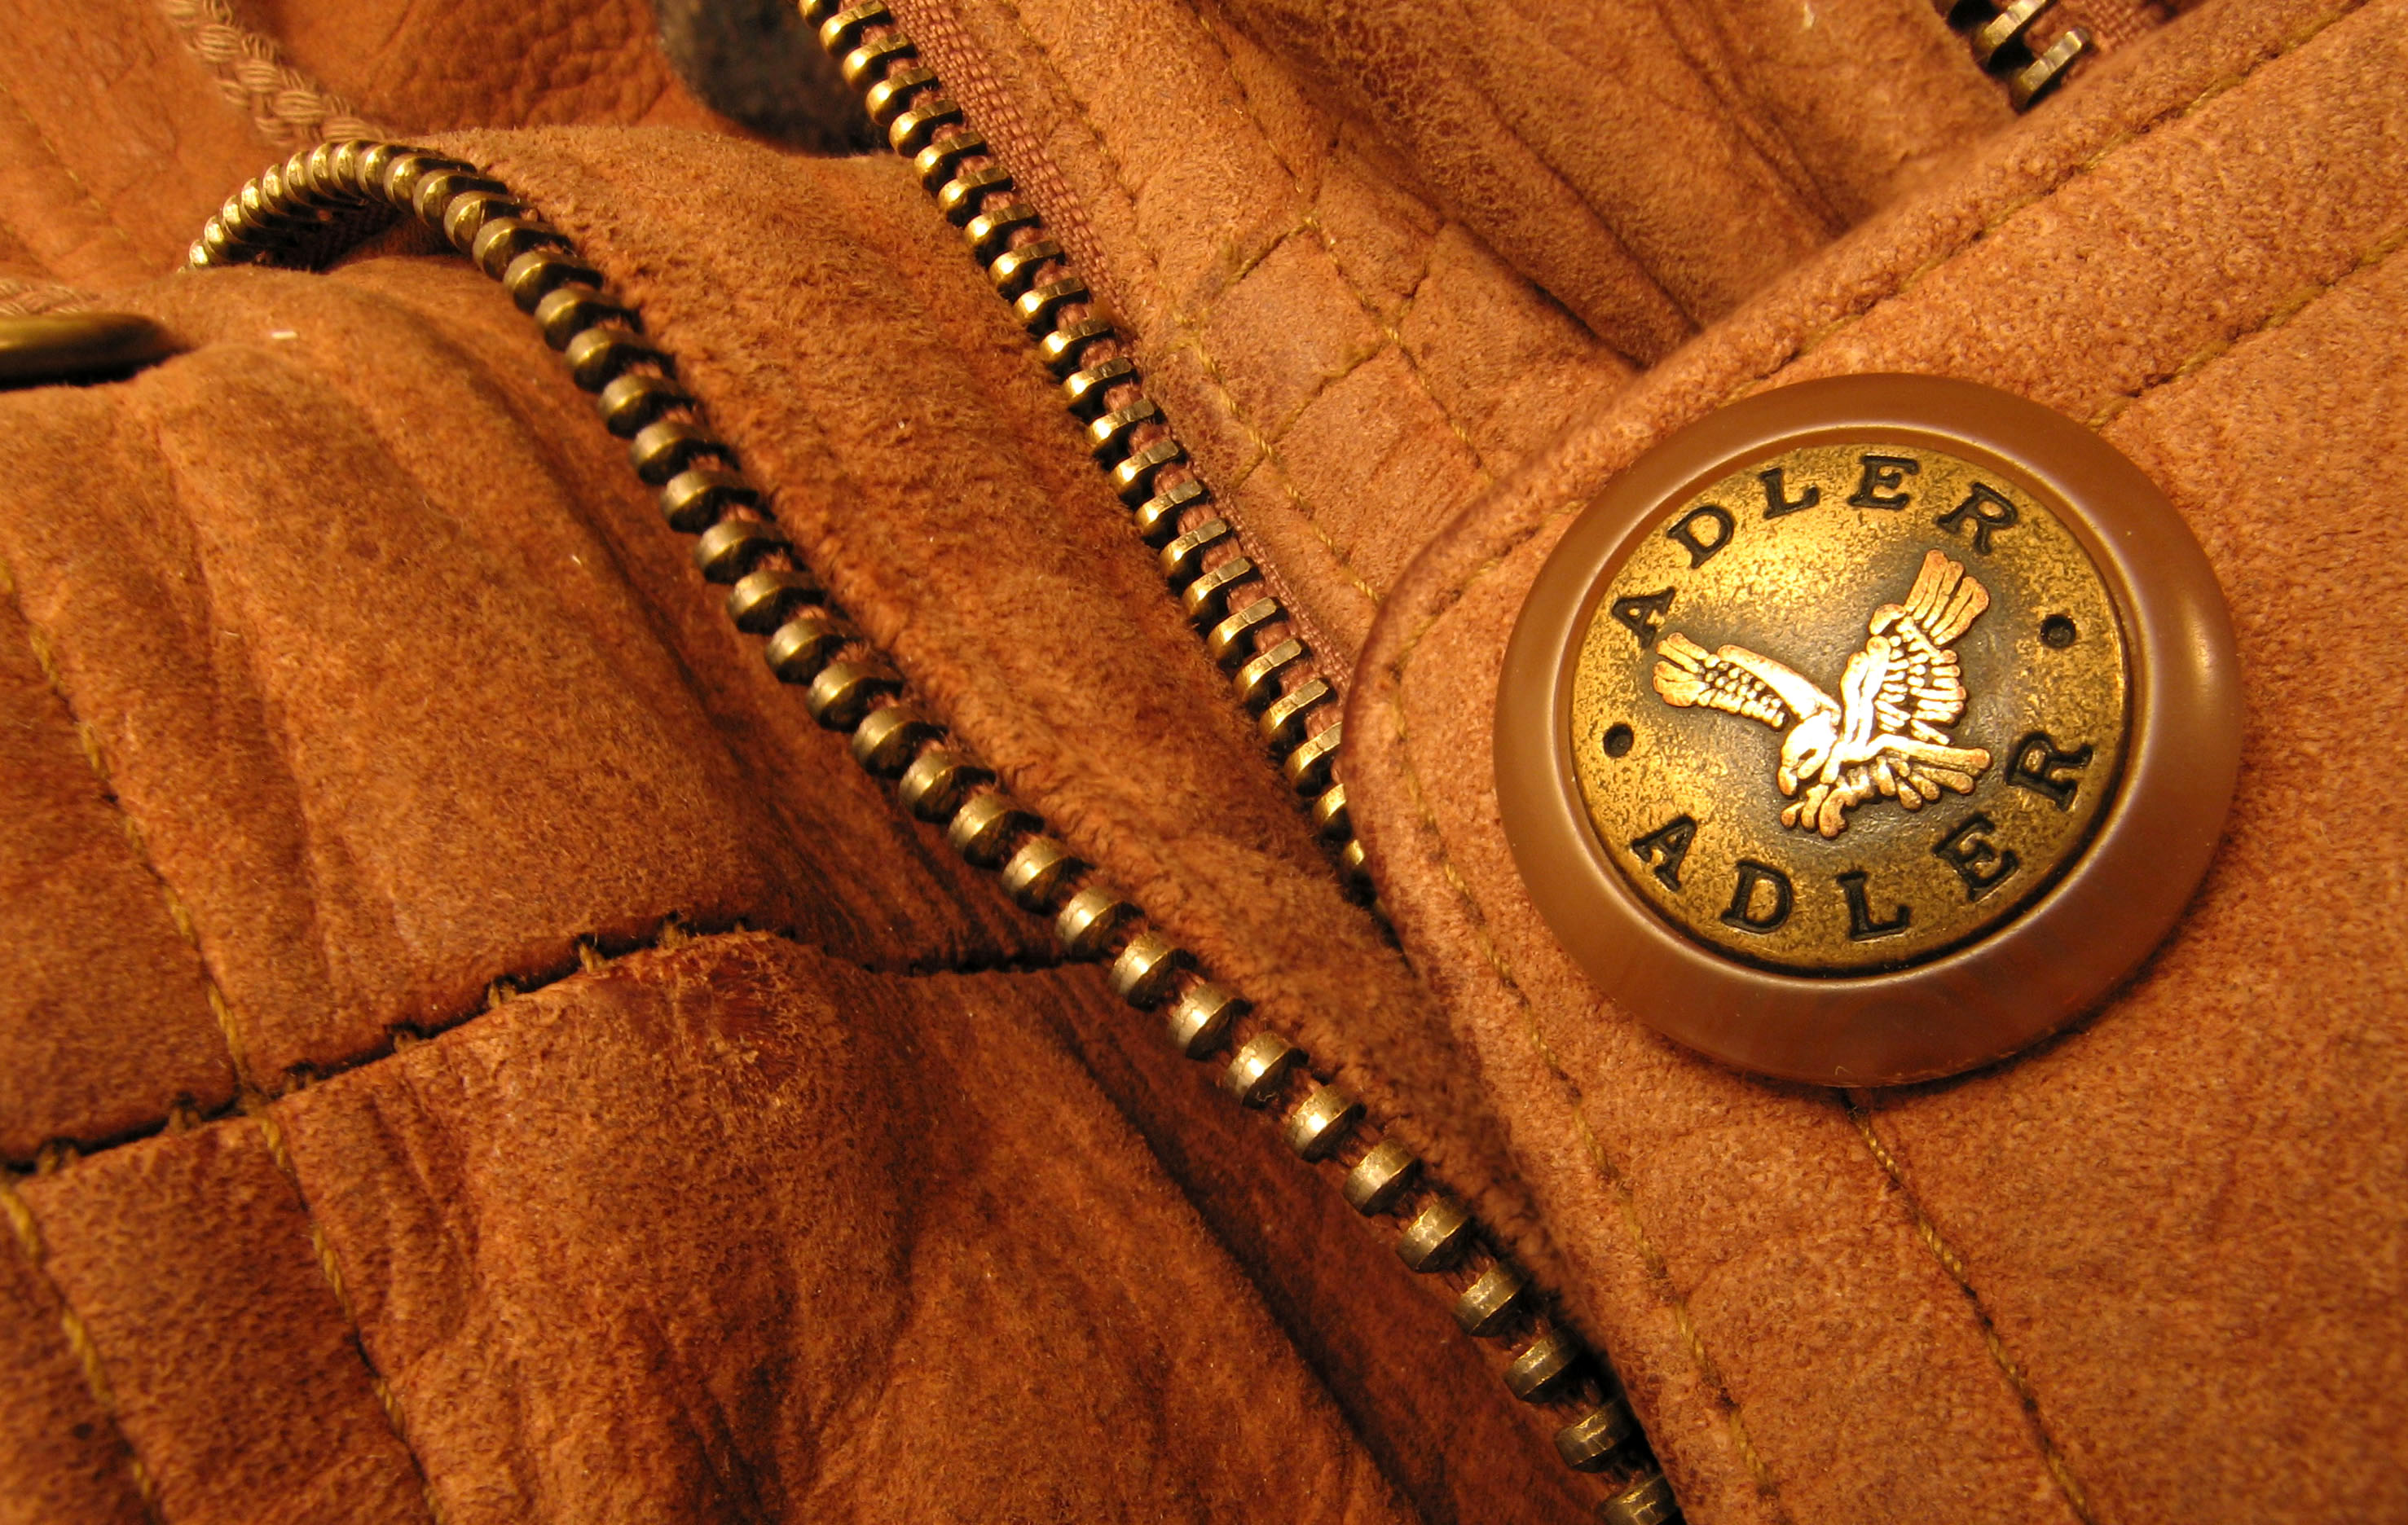 http://upload.wikimedia.org/wikipedia/commons/4/40/Suede_Jacket_Adler.jpg